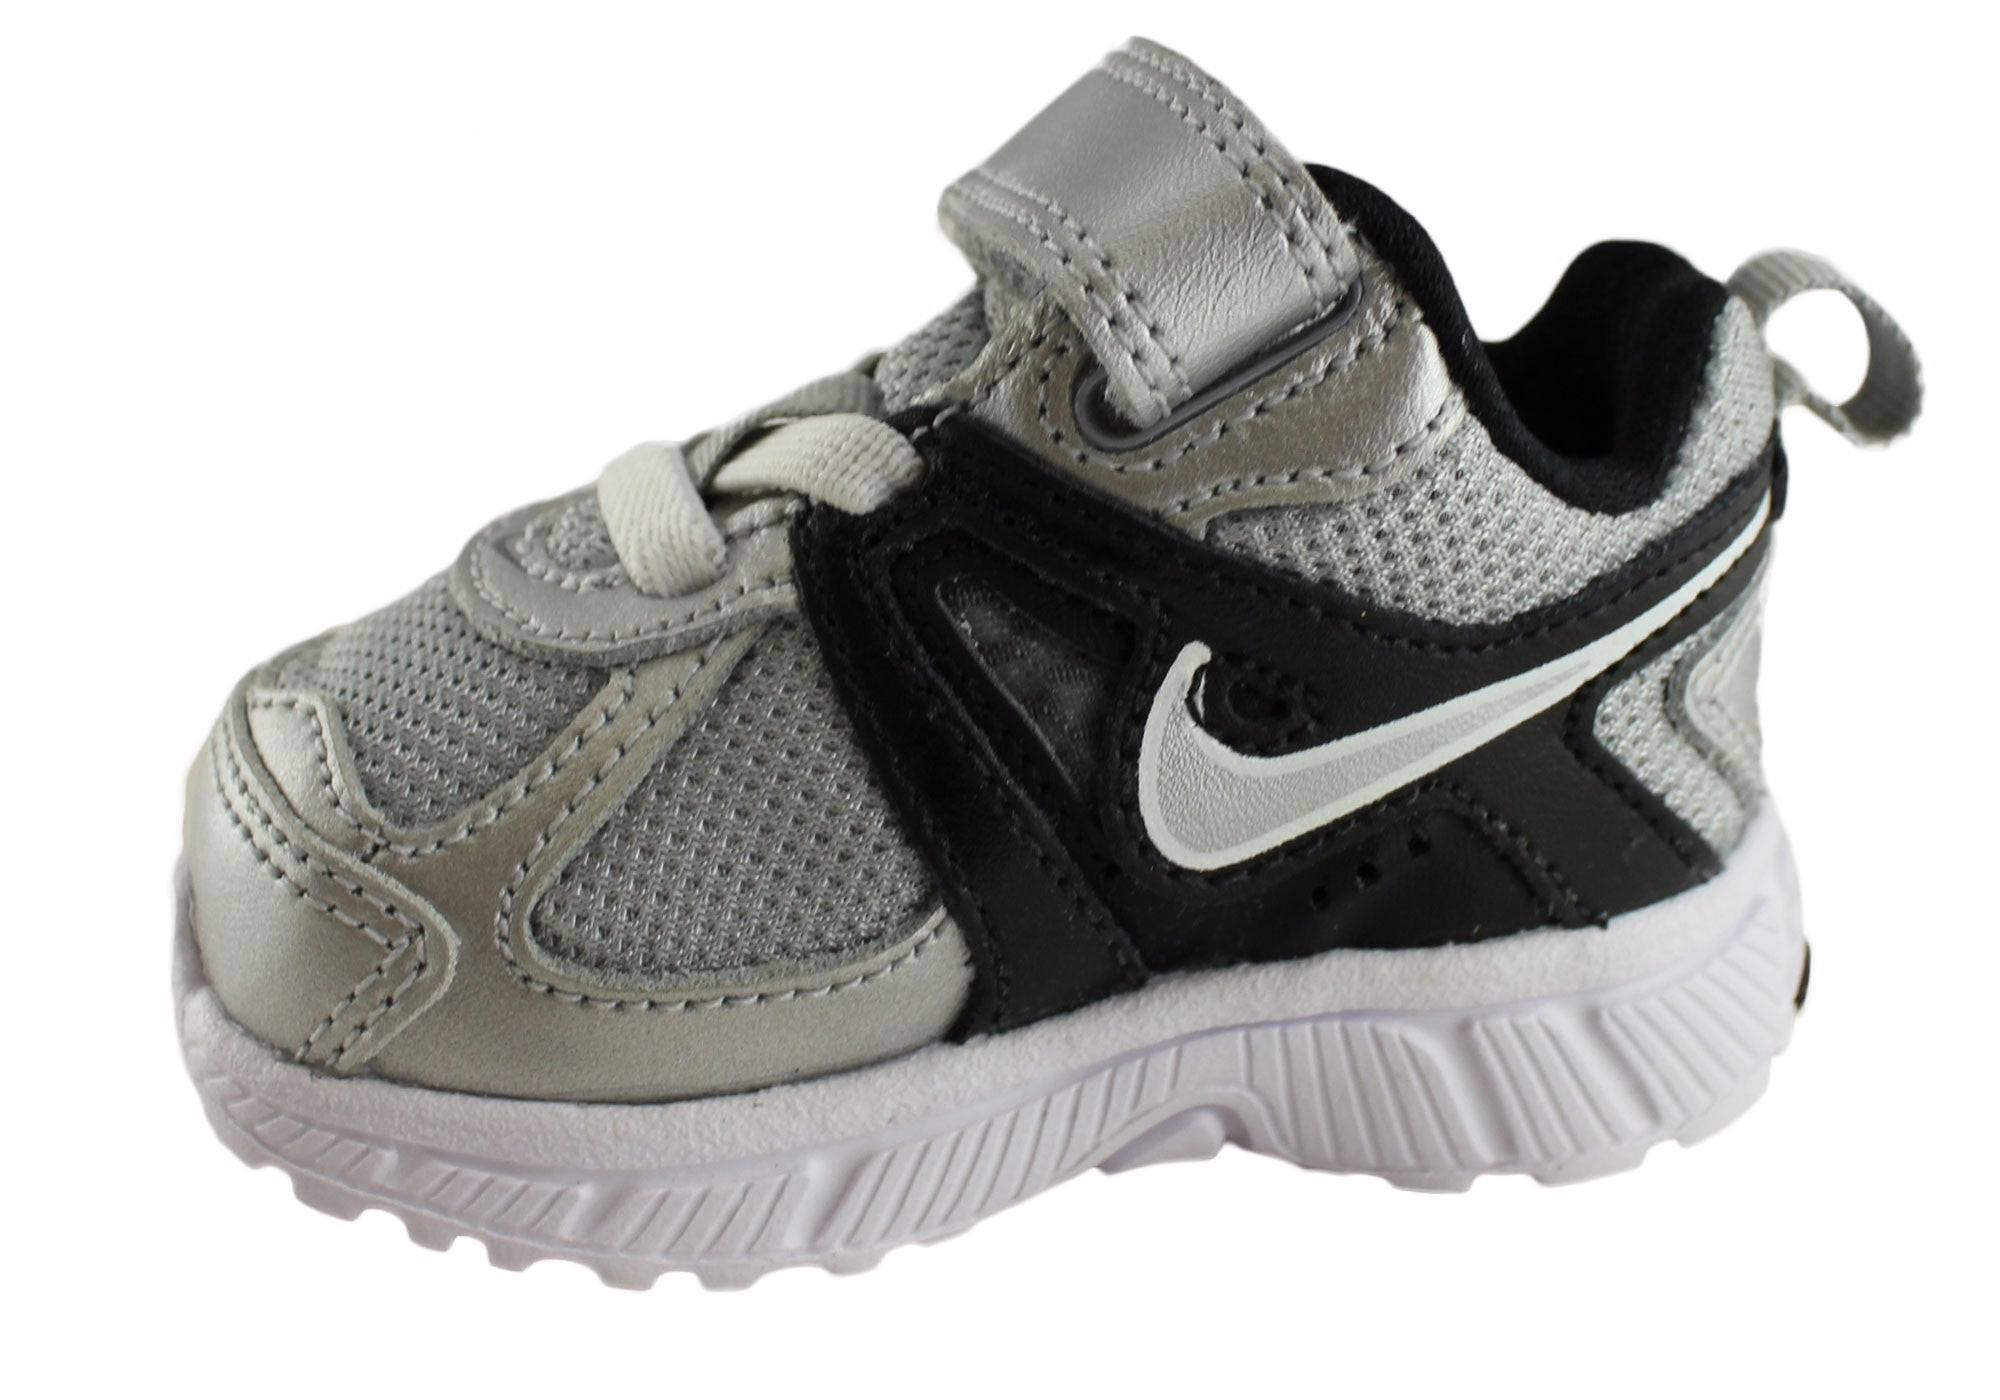 Nike Dart 9 Toddler/Baby Shoes